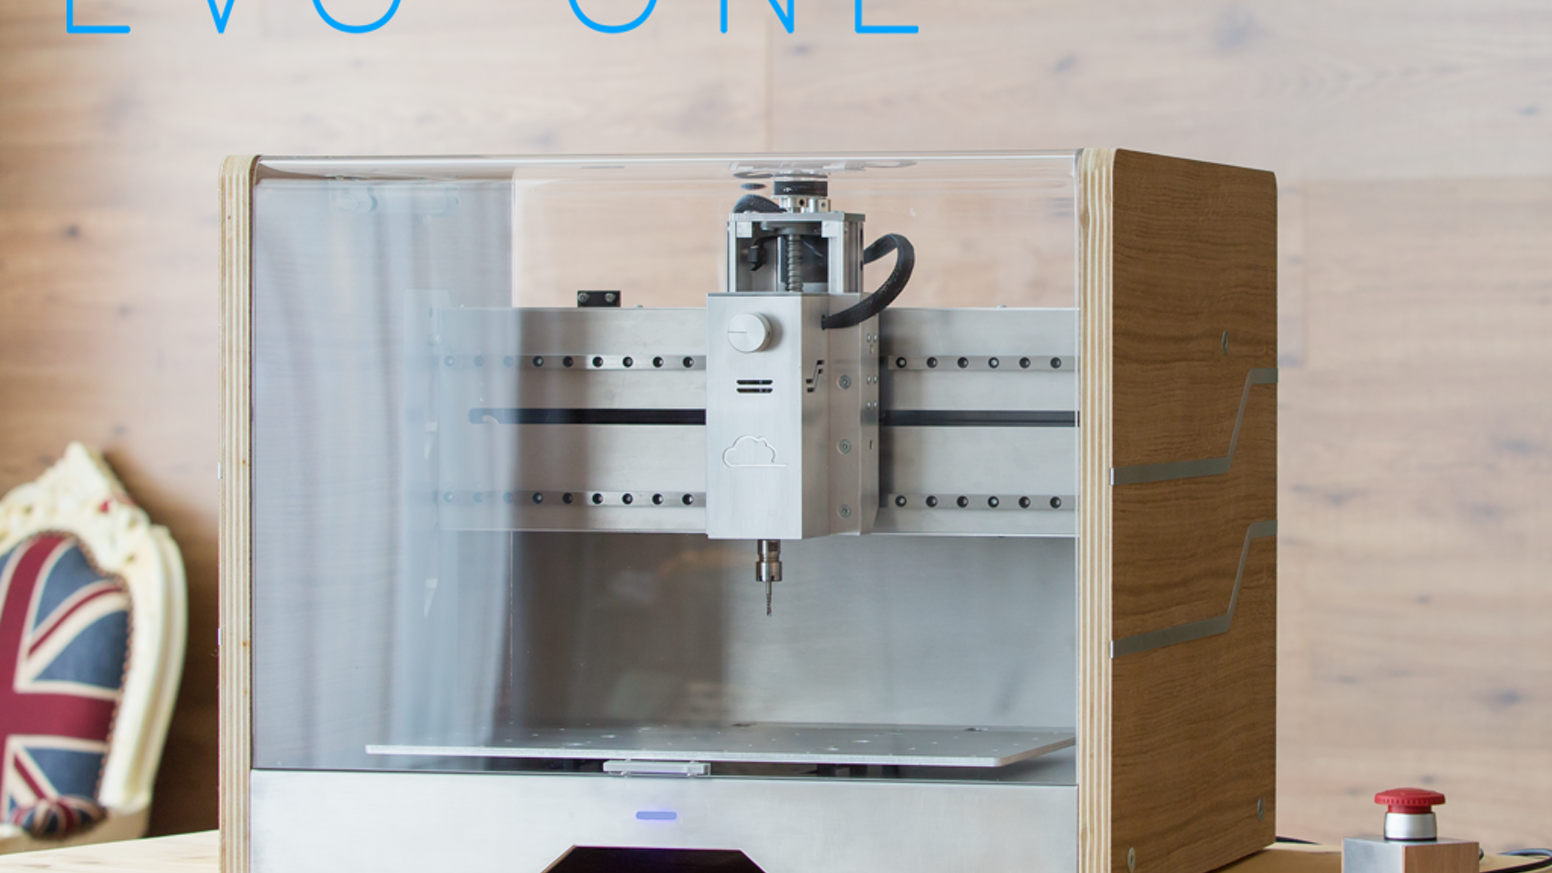 Evo One Desktop Cnc Mill Made For Anyone By Makerdreams Kickstarter Details About 12x Universal Copper Circuit Board Plate Prototype Pcb